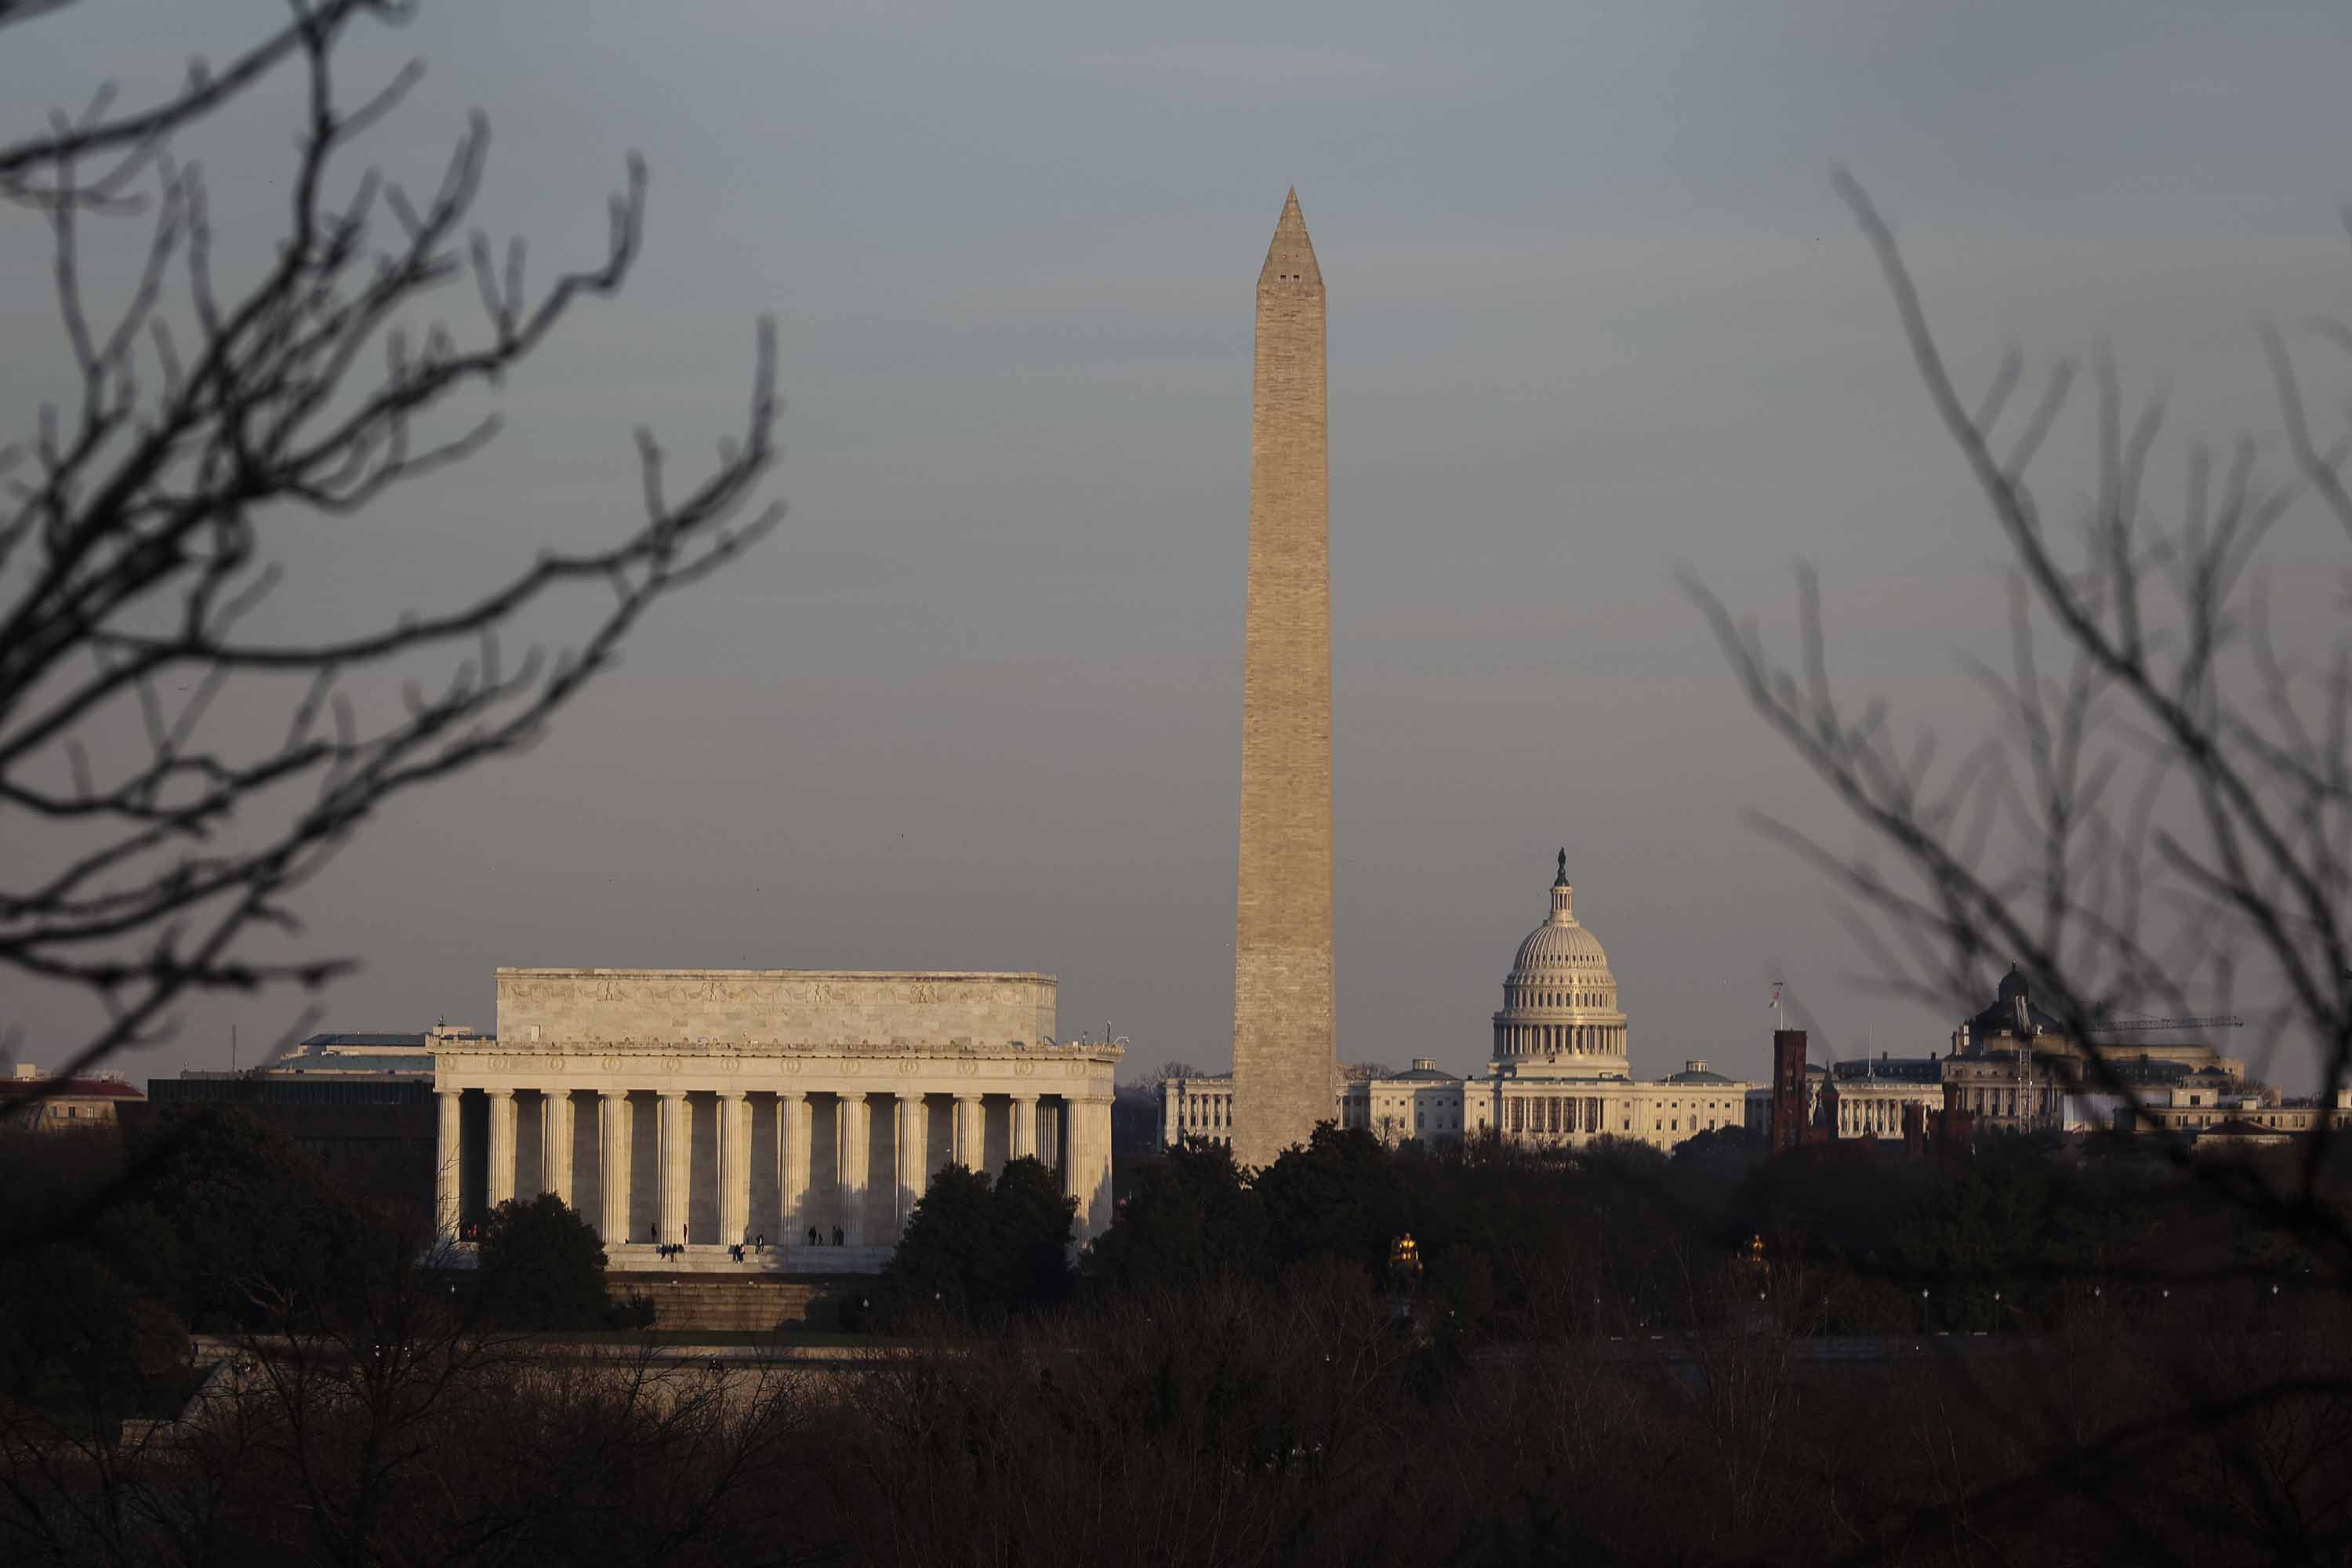 The Lincoln Memorial, left, Washington Monument, center, and U.S. Capitol Building are seen from Arlington, Virginia, on December 27.